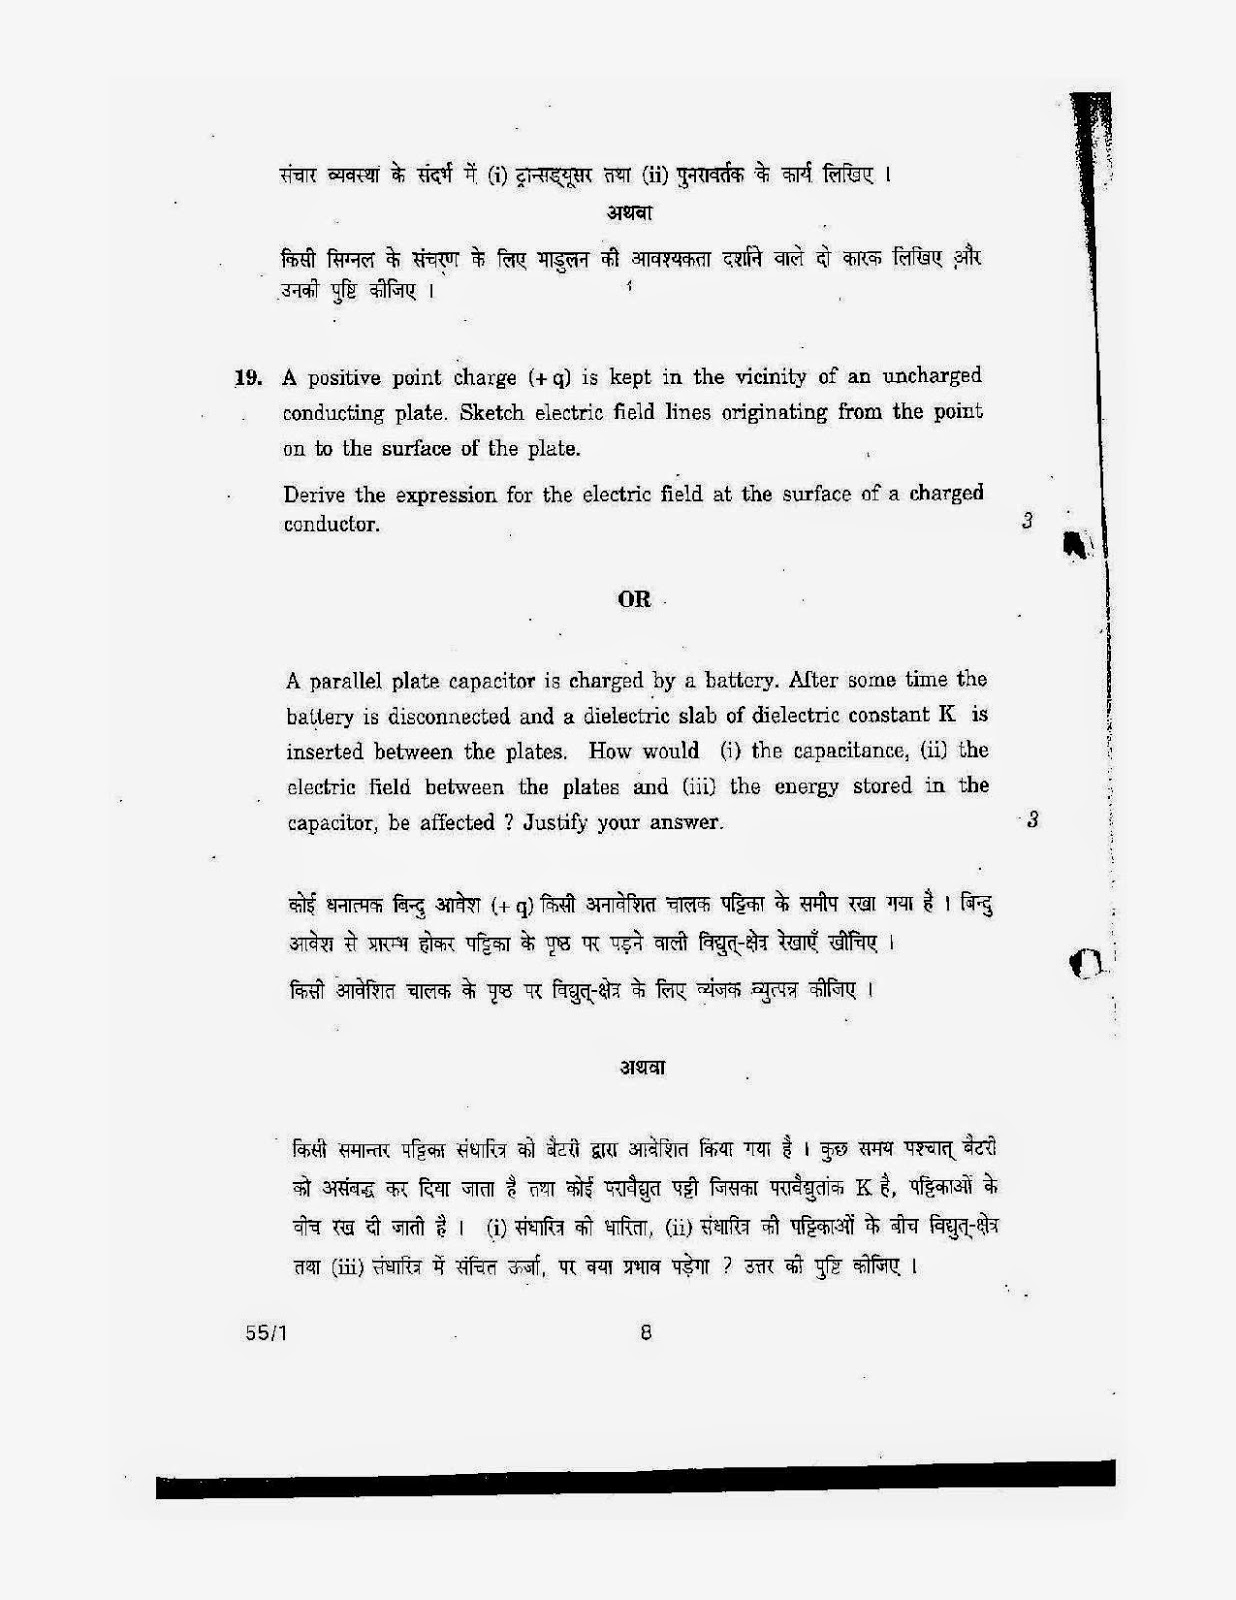 cbse class 12th 2008 Physics question paper